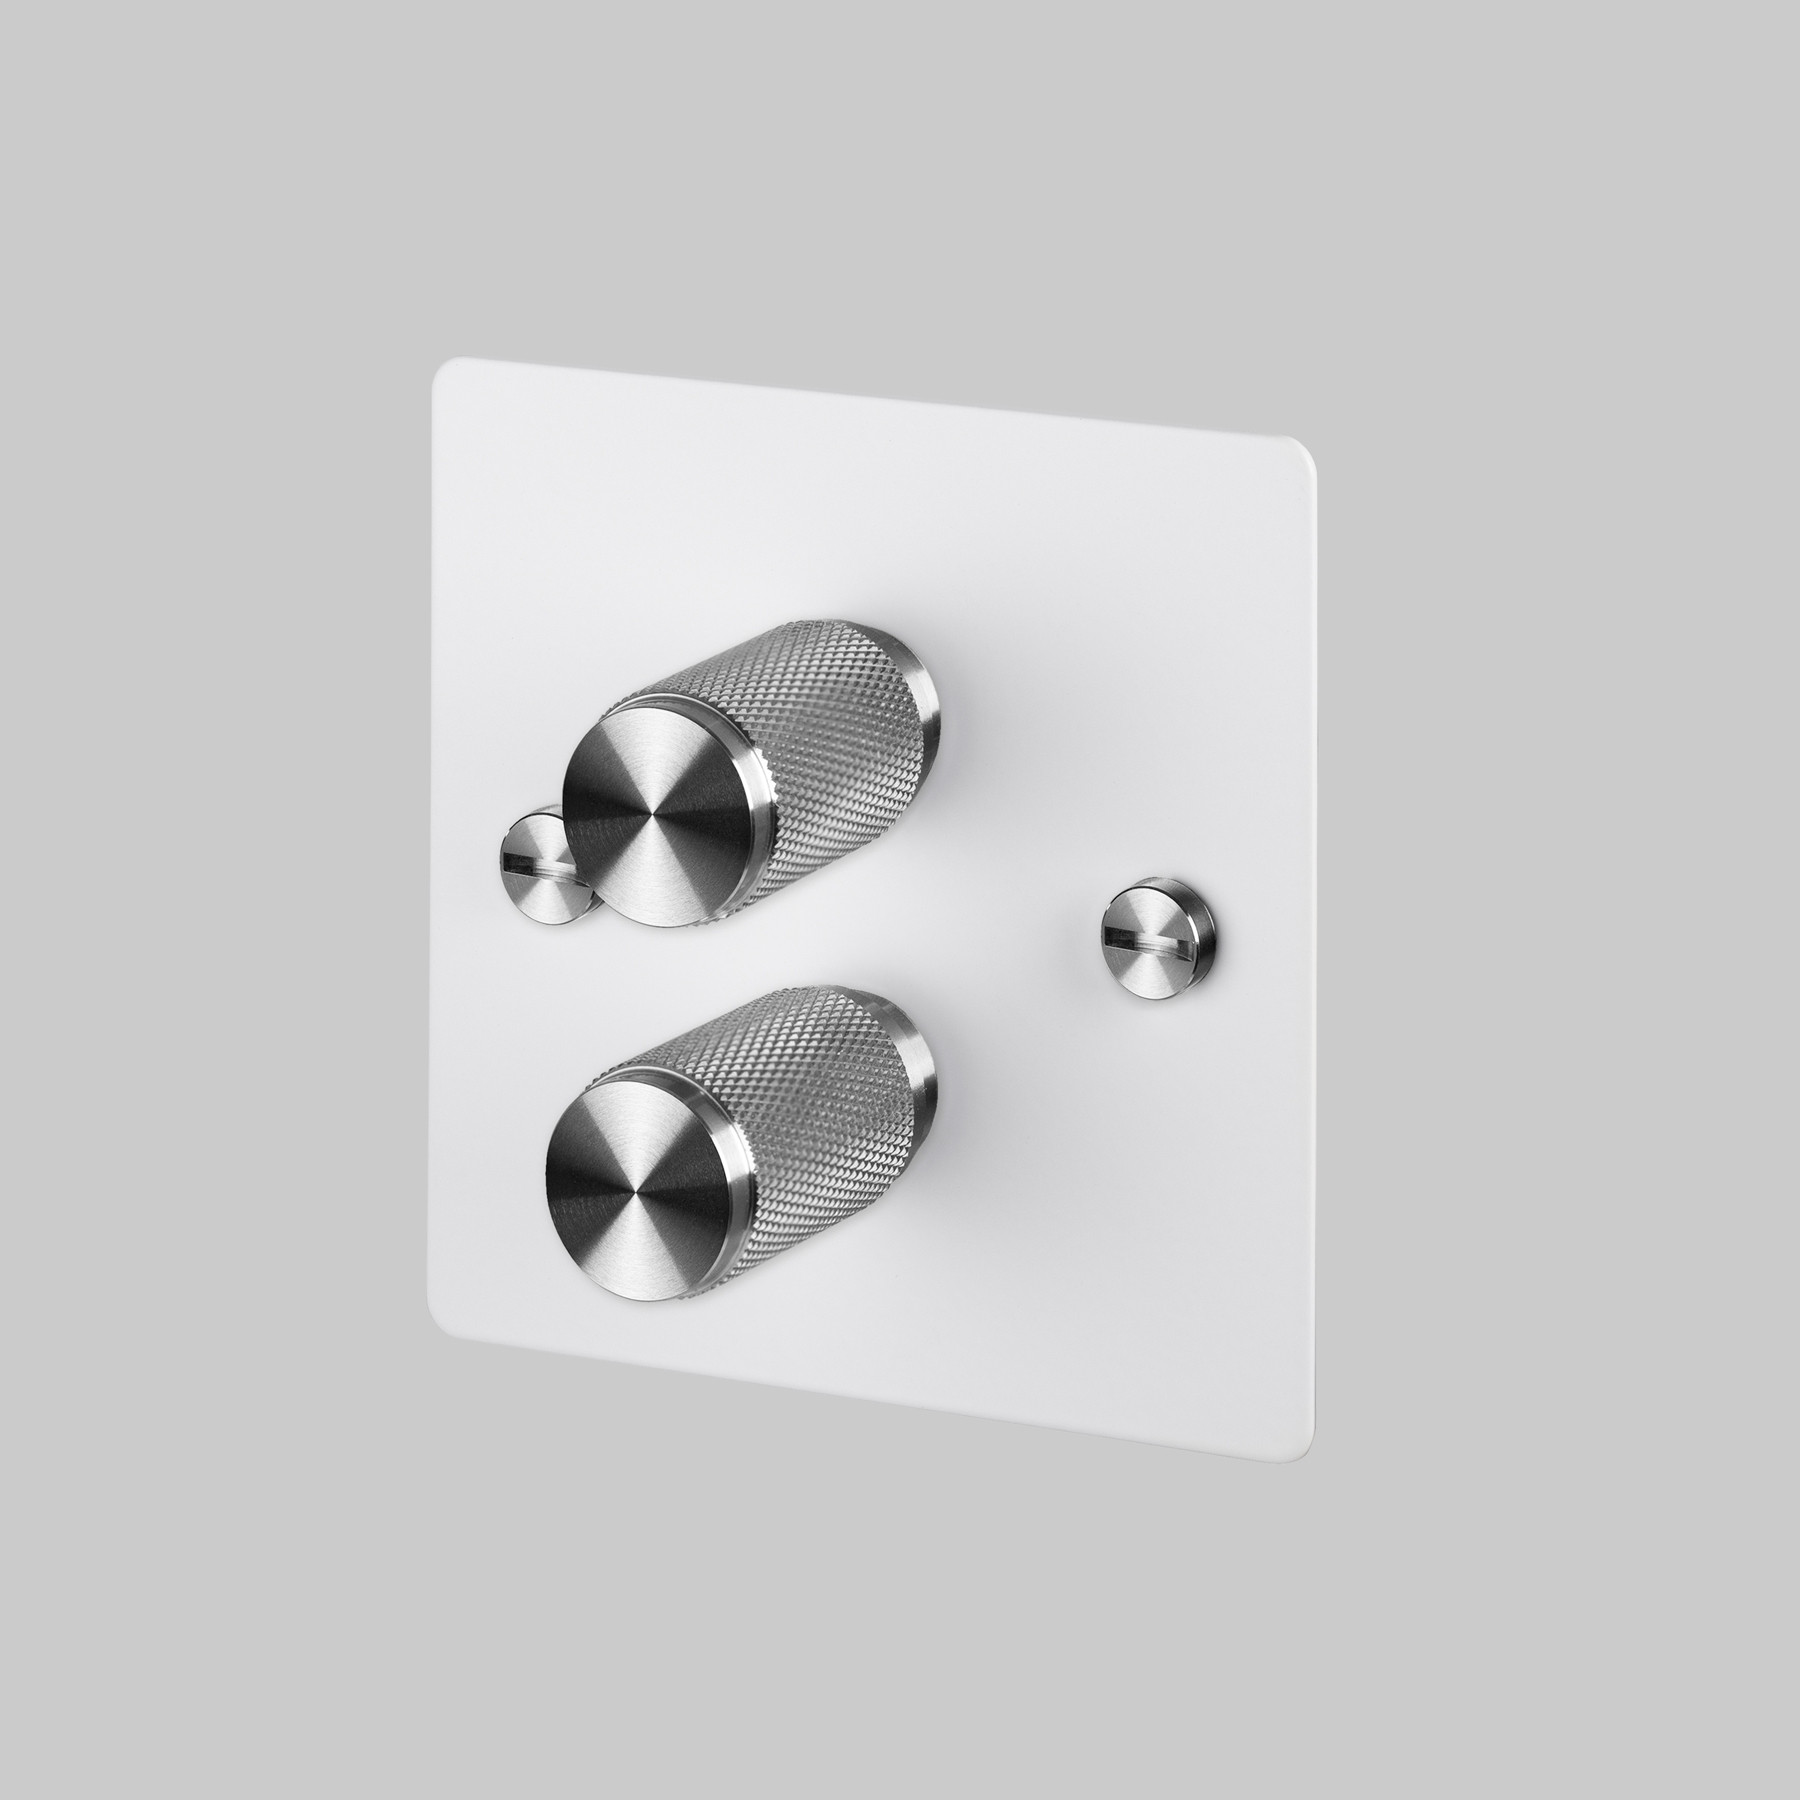 2G DIMMER / WHITE / STEEL